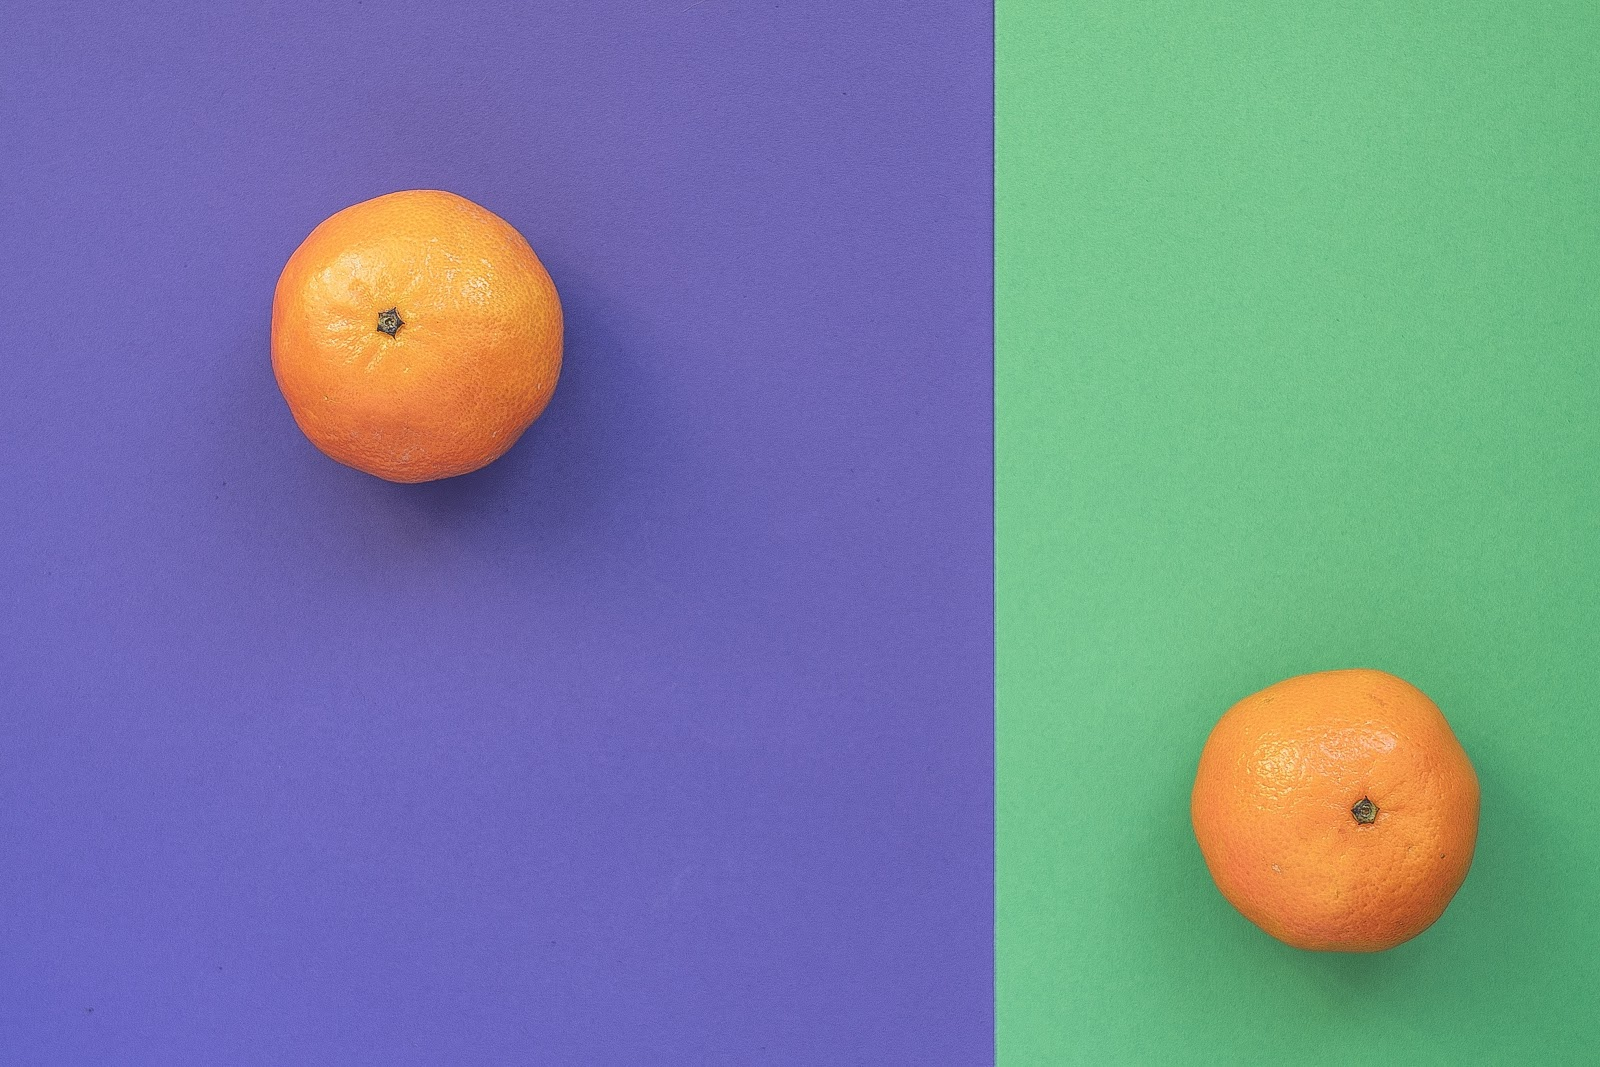 Two oranges are separated into differently colored rectangular areas.